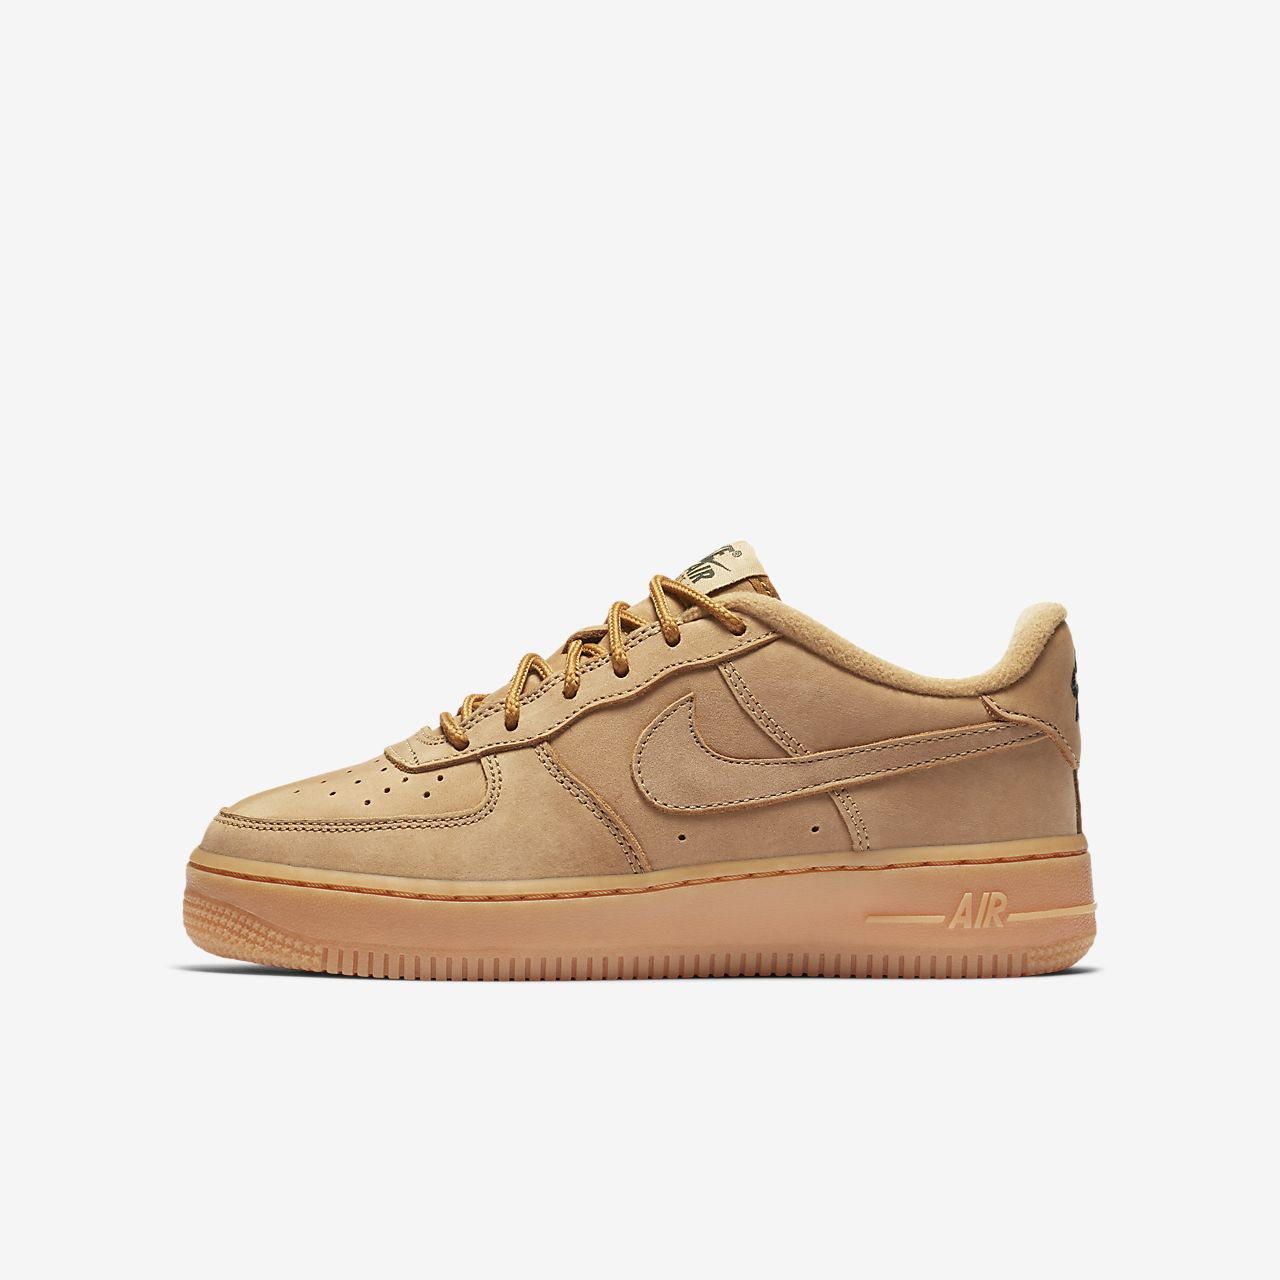 Nike Air Force 1 Faible Partie Pas Cher Junior